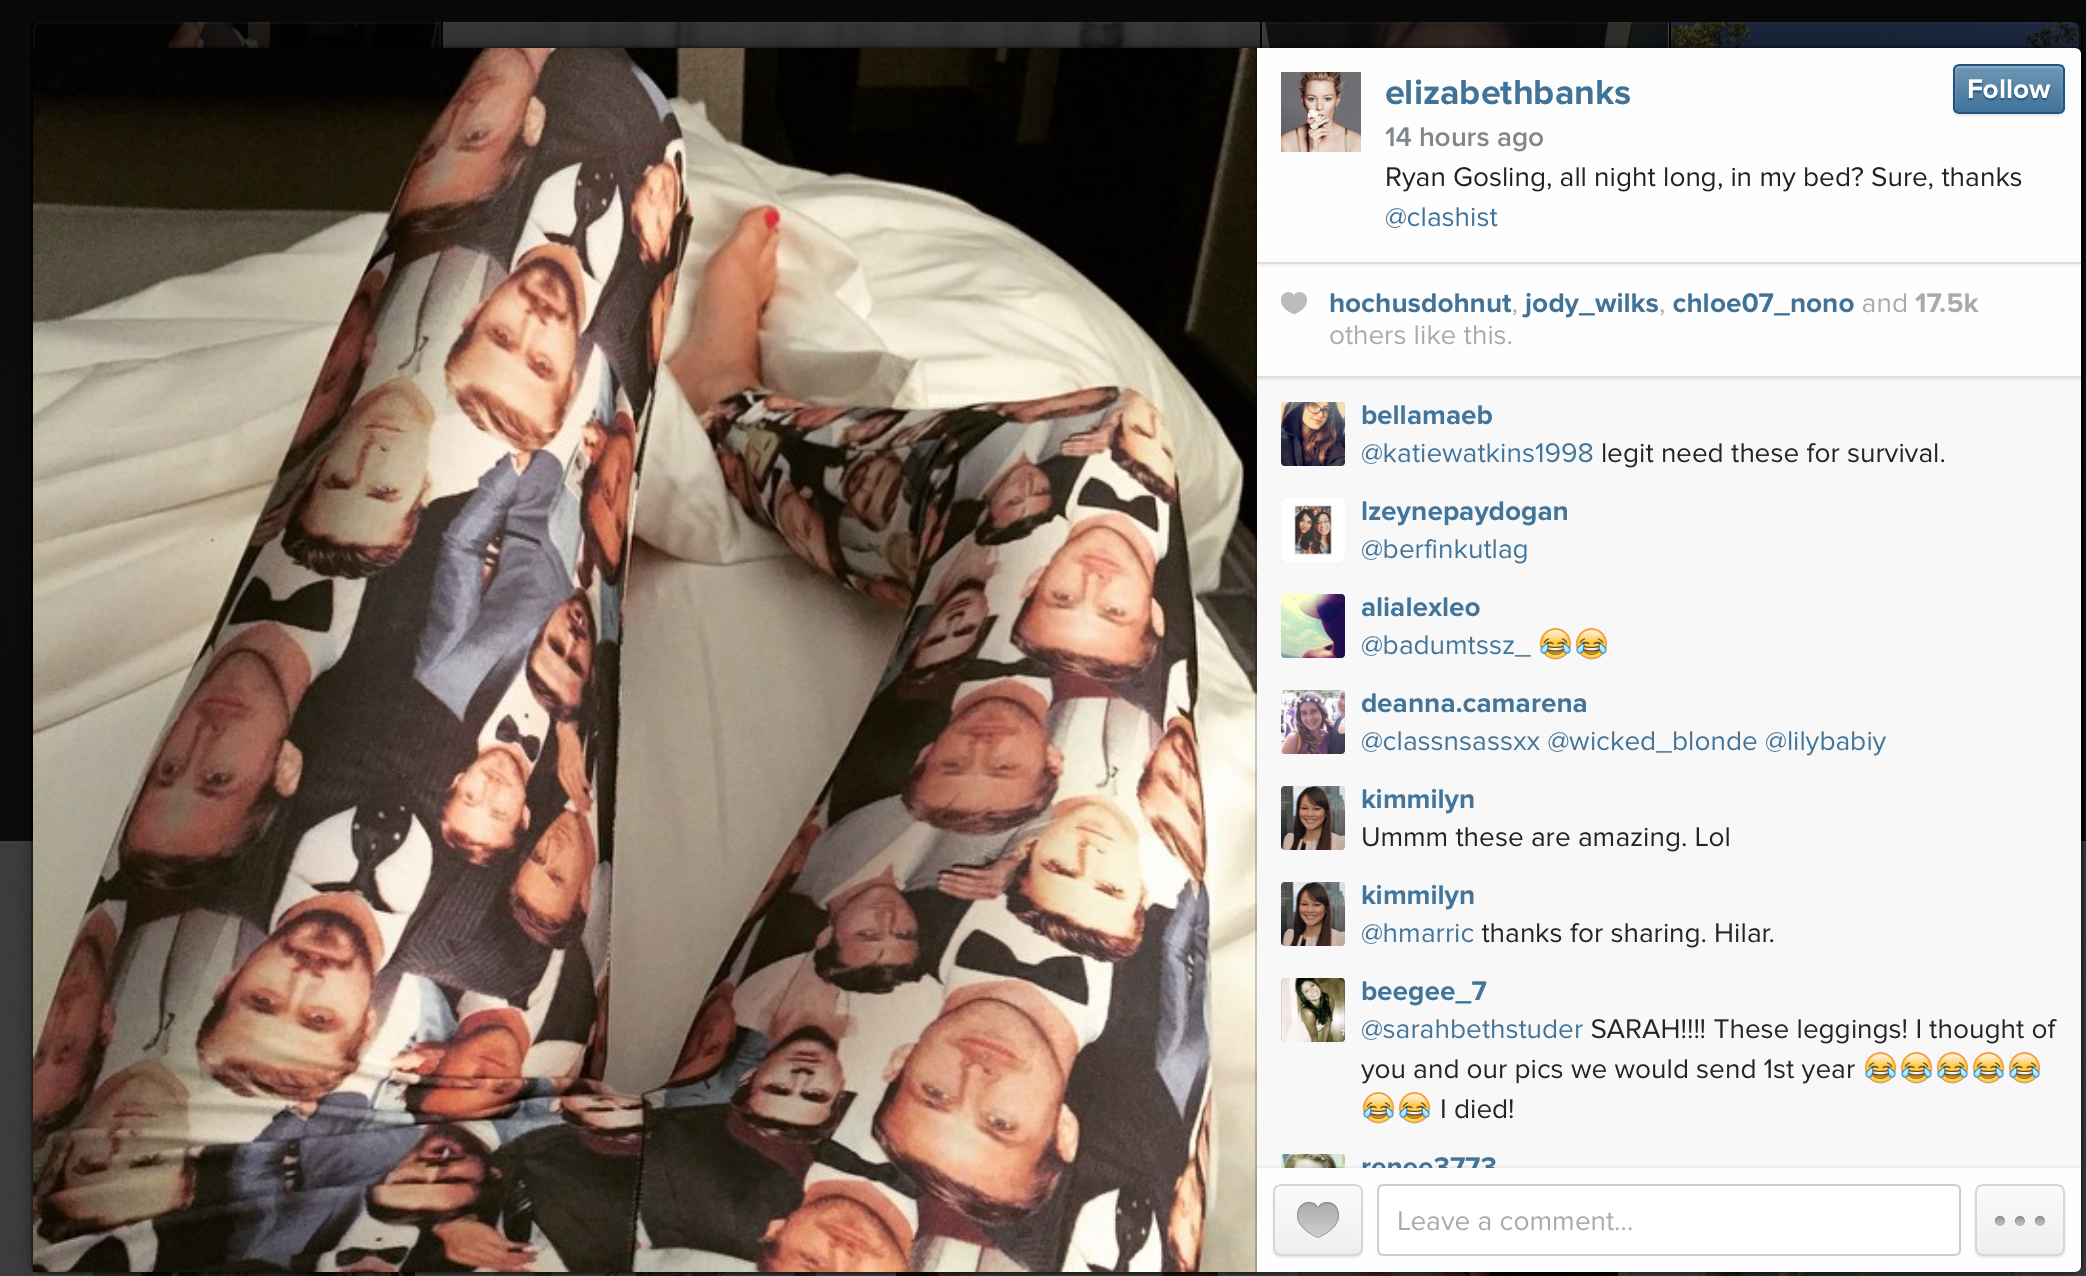 Elizabeth Banks in James leggings - 3.19.png